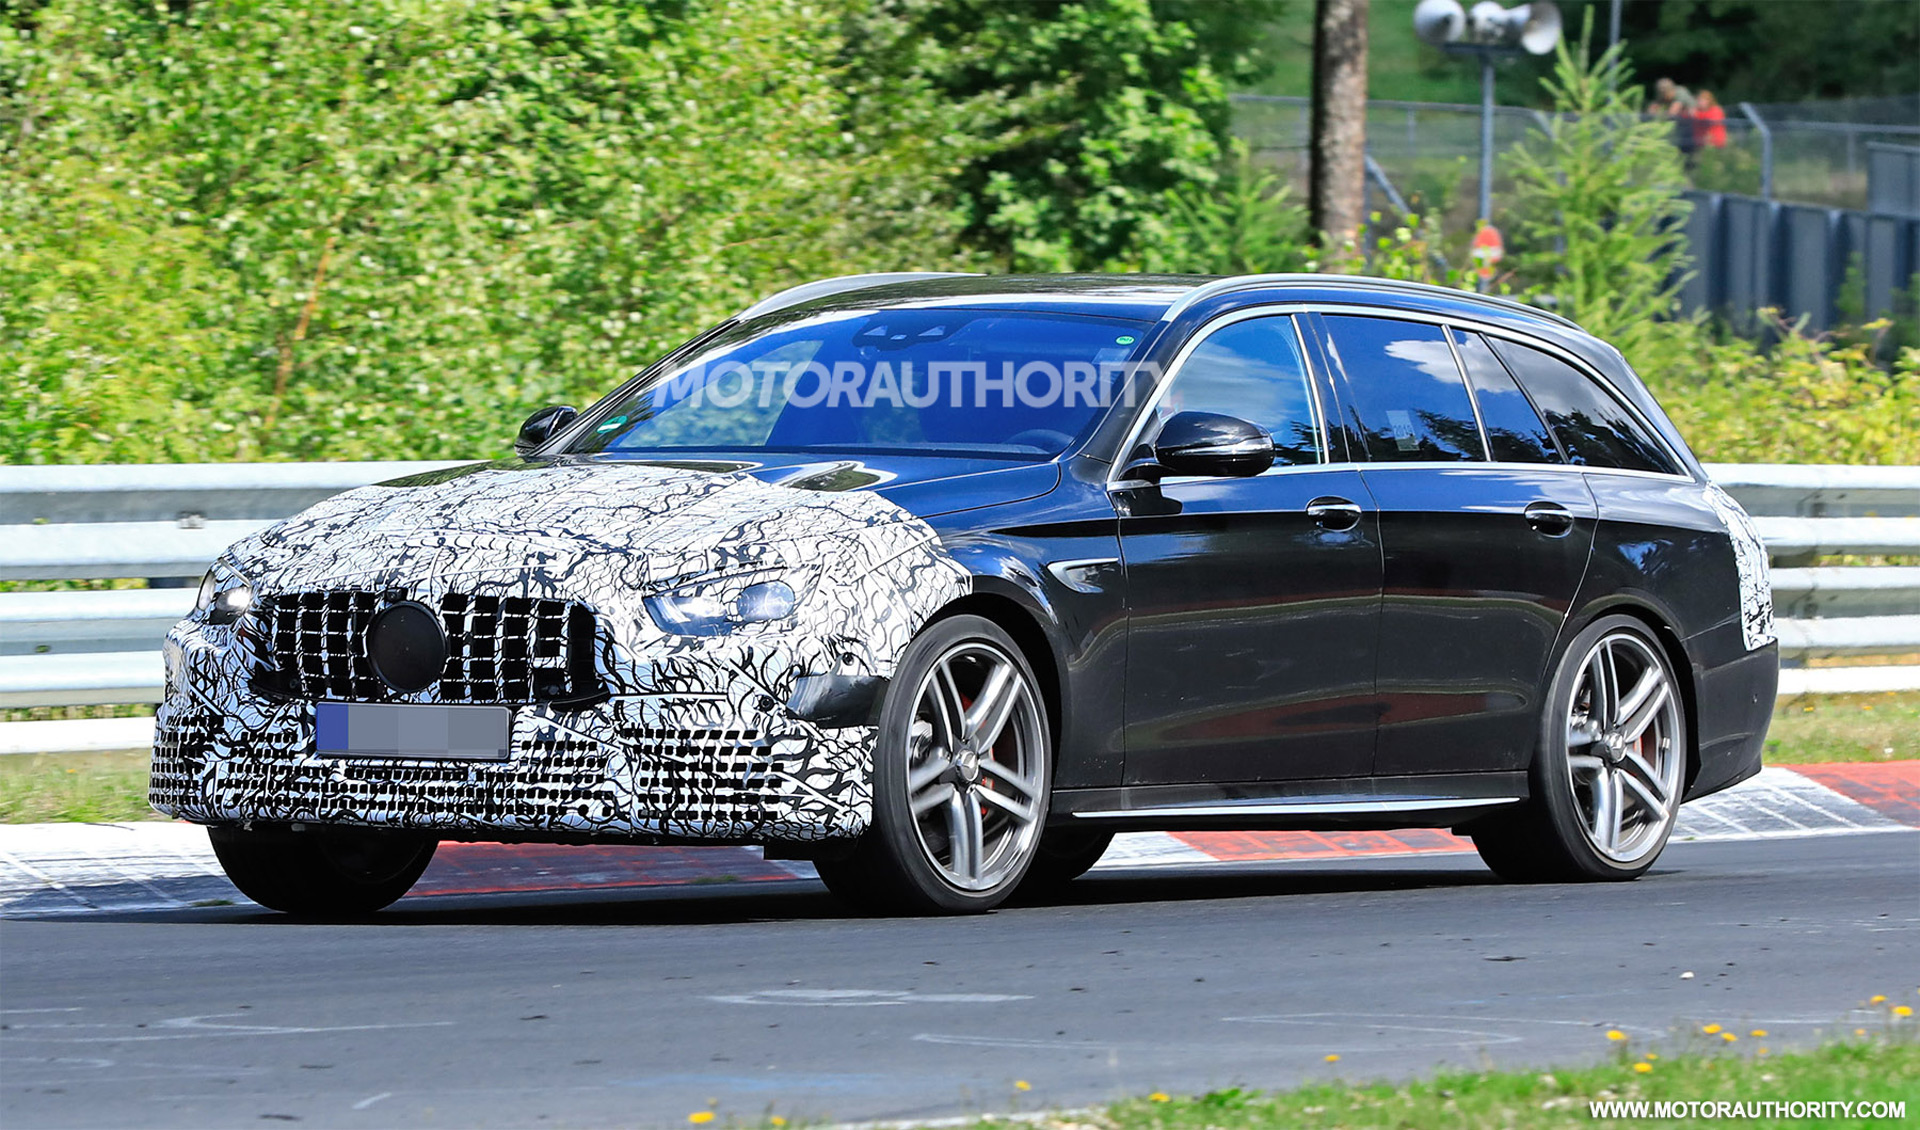 2020 - [Mercedes-Benz] Classe E restylée  - Page 2 2021-mercedes-amg-e63-wagon-facelift-spy-shots--photo-credit-s-baldauf-sb-medien_100711681_h